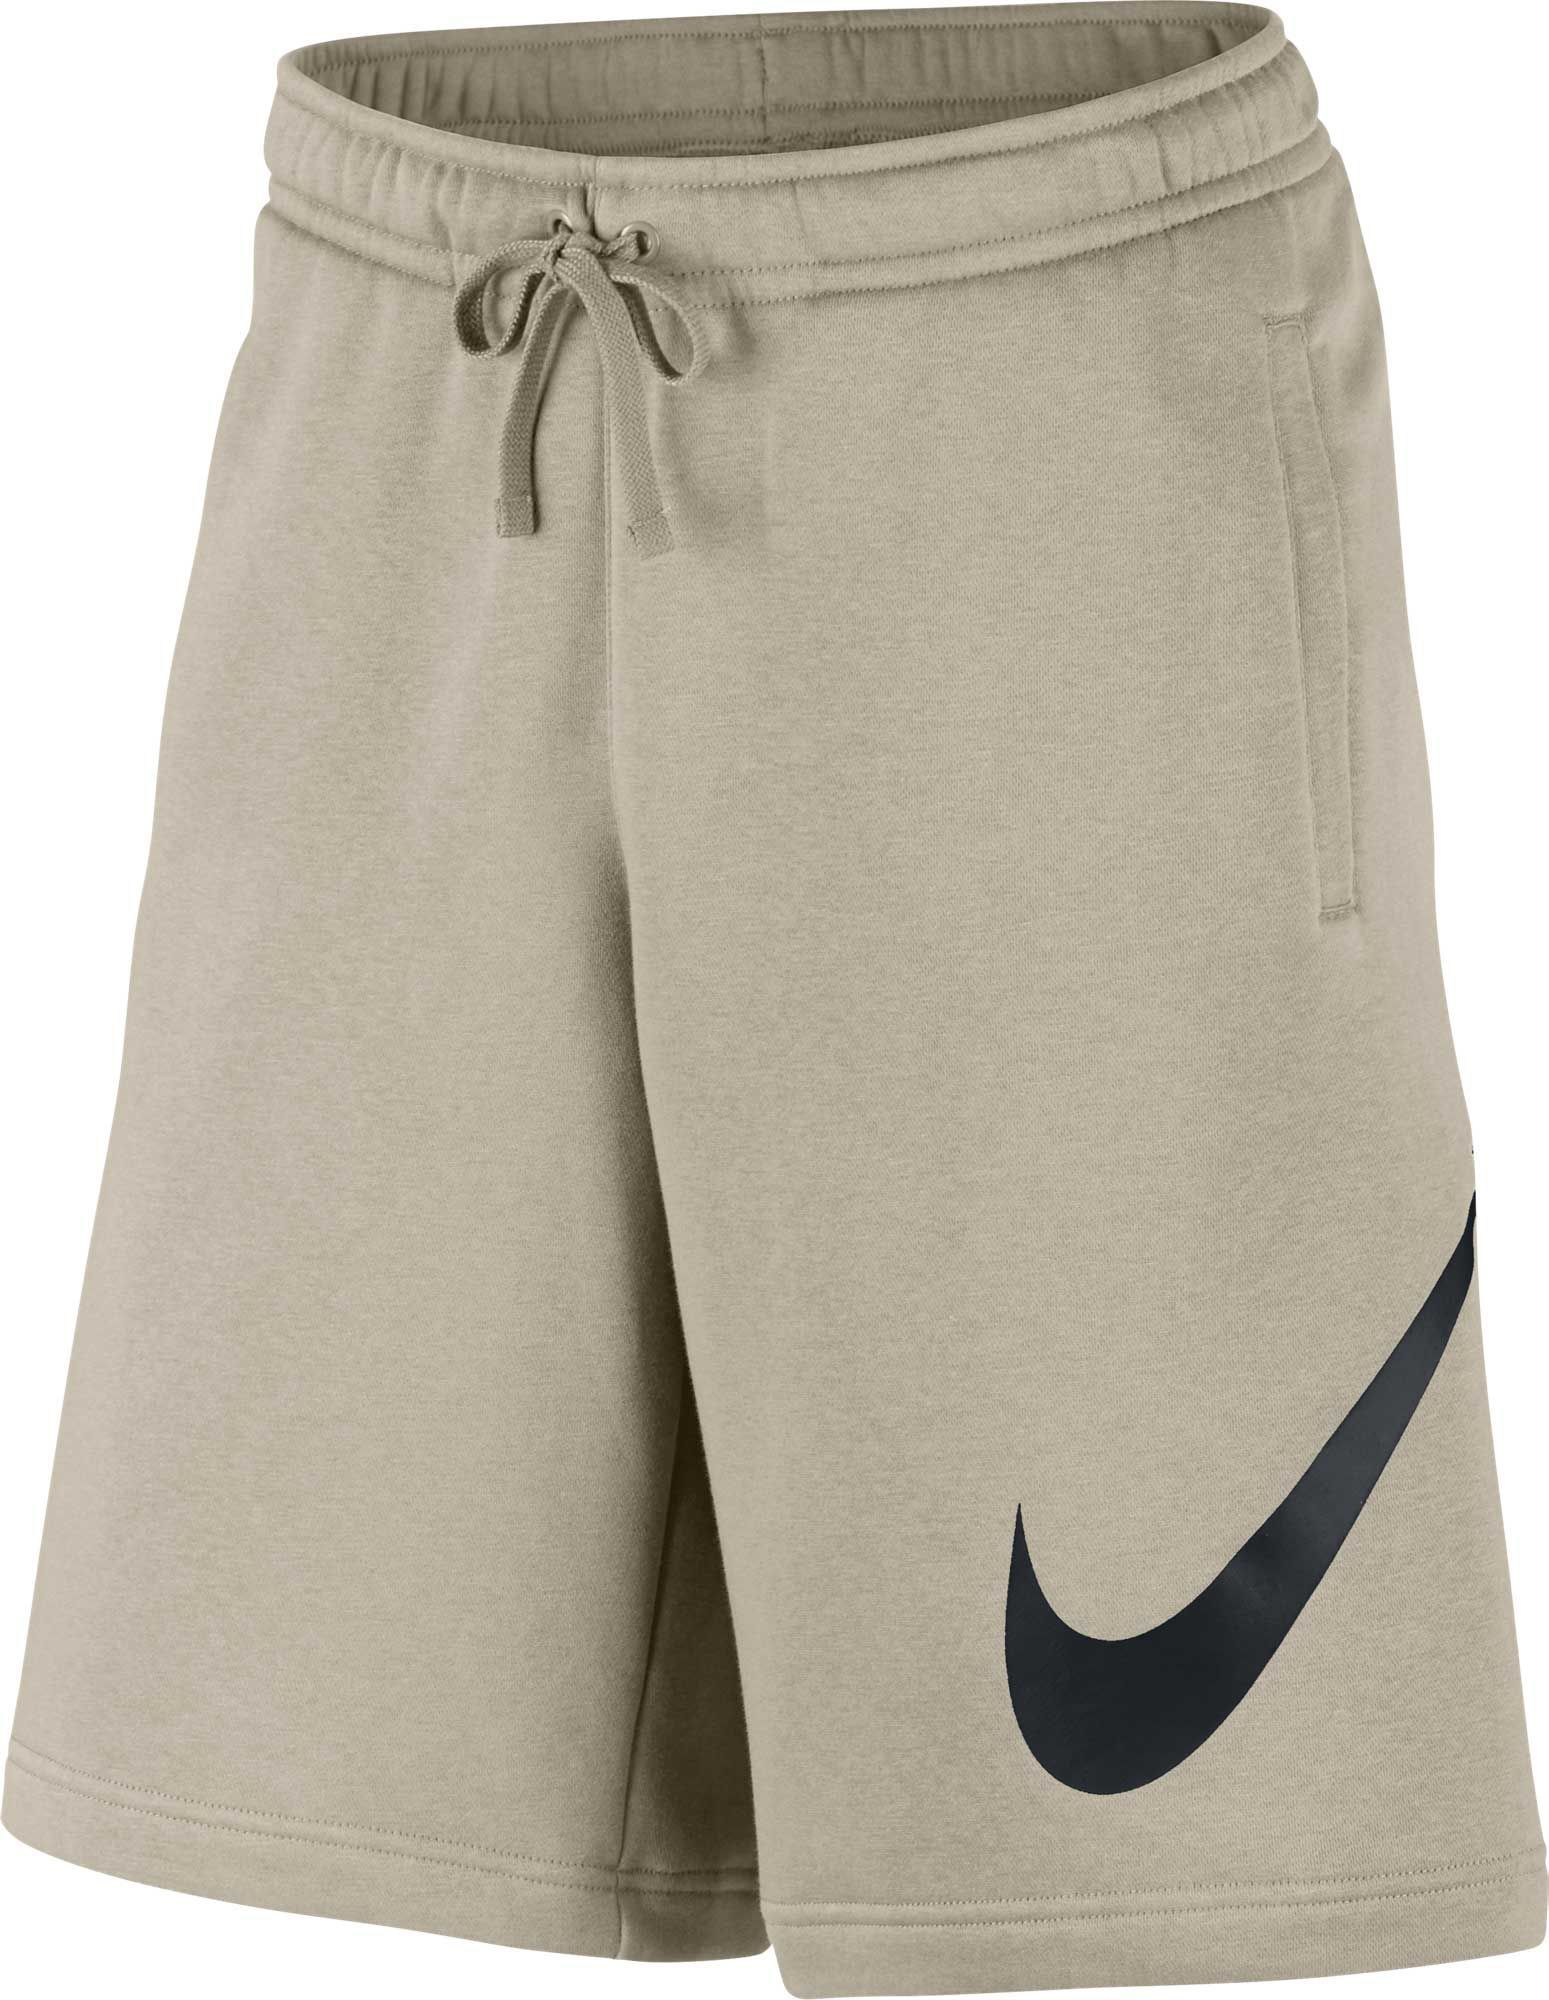 f403866cb394 Nike Men's Sportswear Club Fleece Sweatshorts in 2019 | Products ...